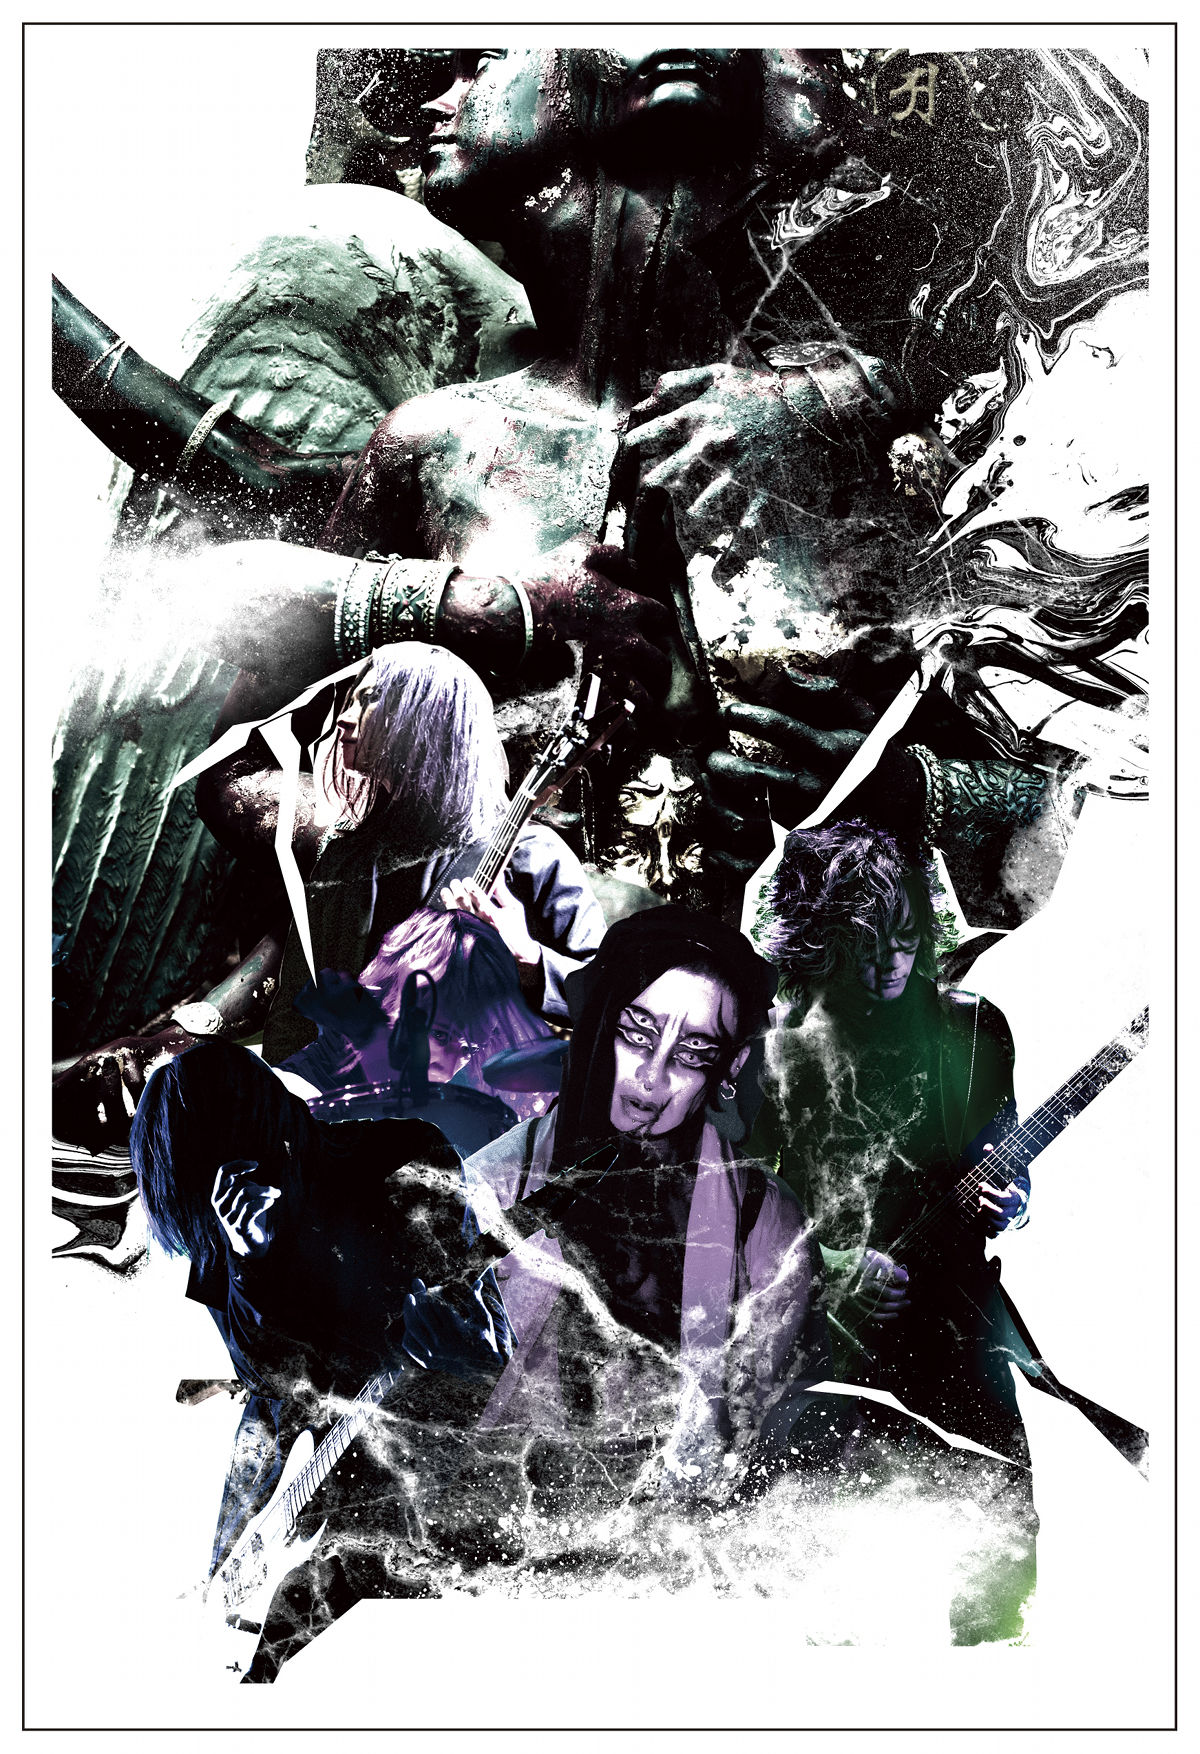 Dir En Grey Macabre Tour